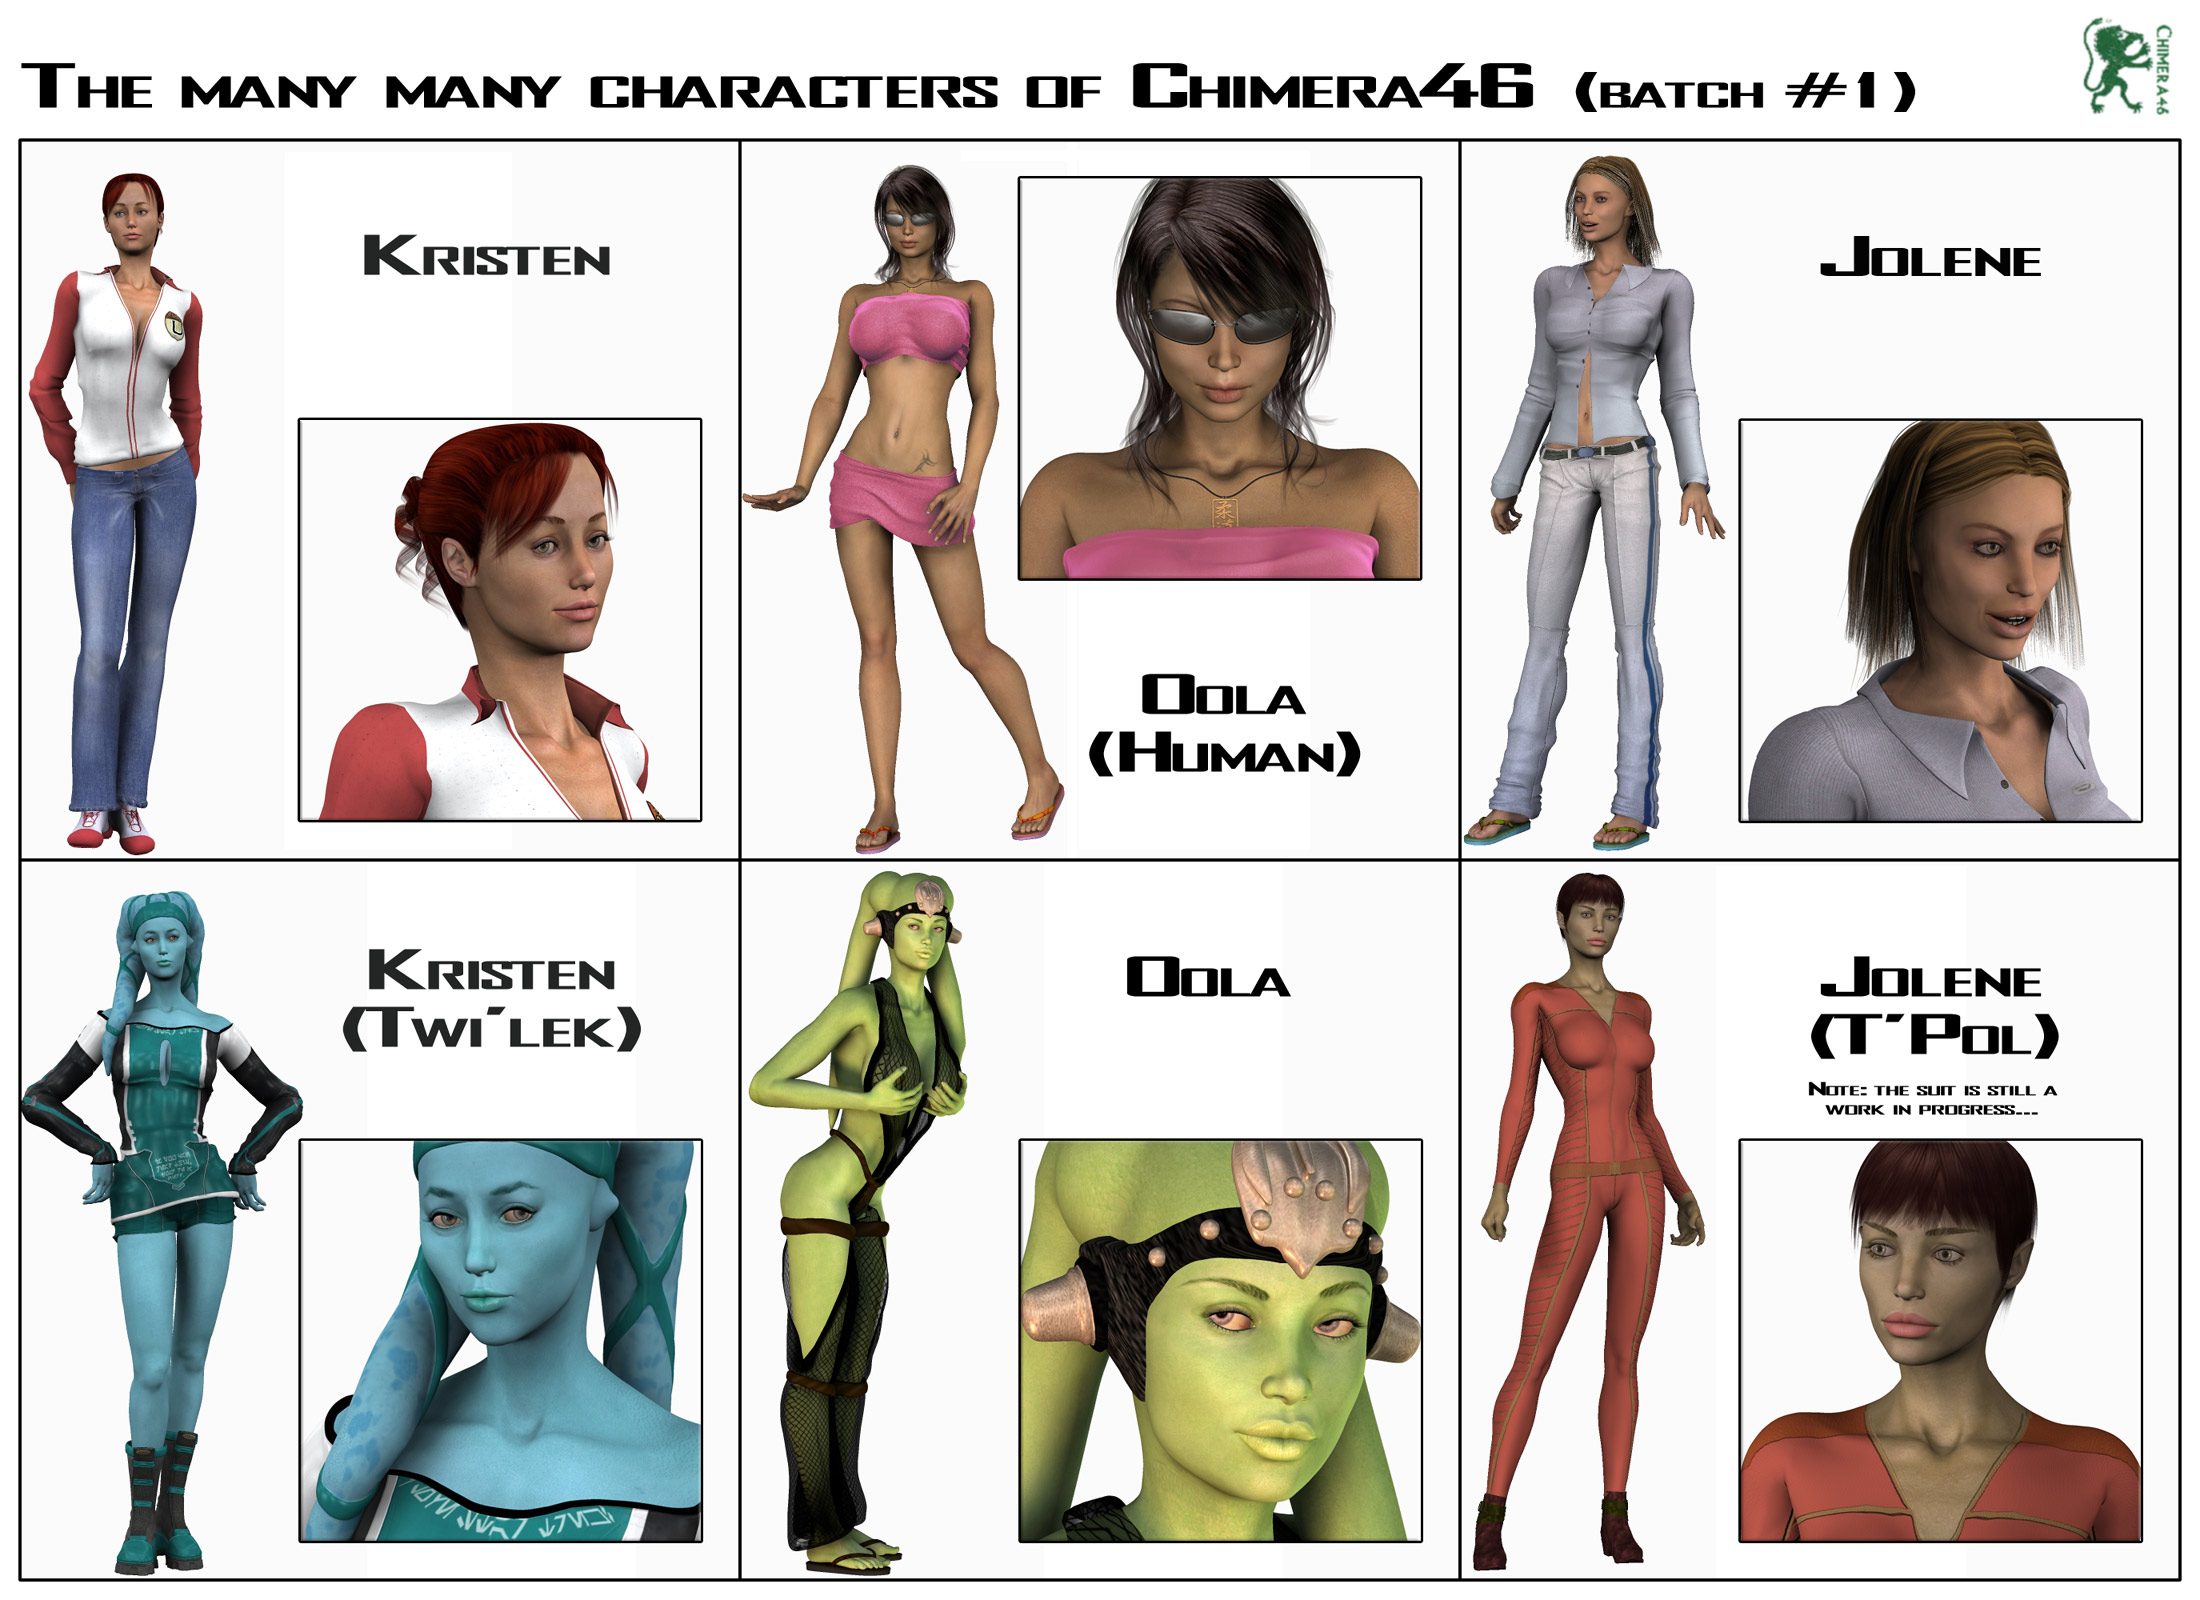 The Many Characters of Chimera46 (Batch 1)